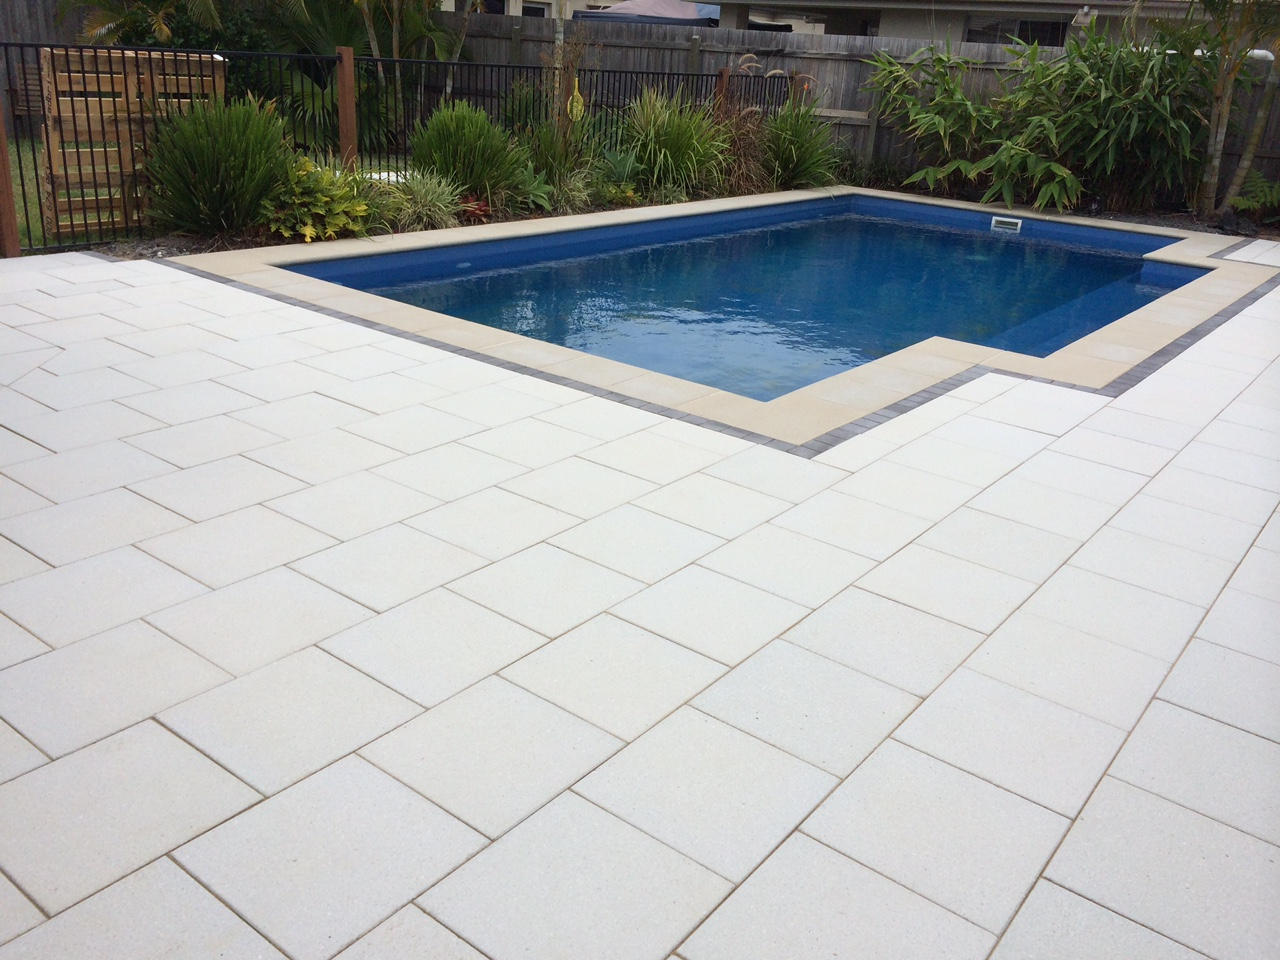 Pavescape-Landscapes-Paved pool area